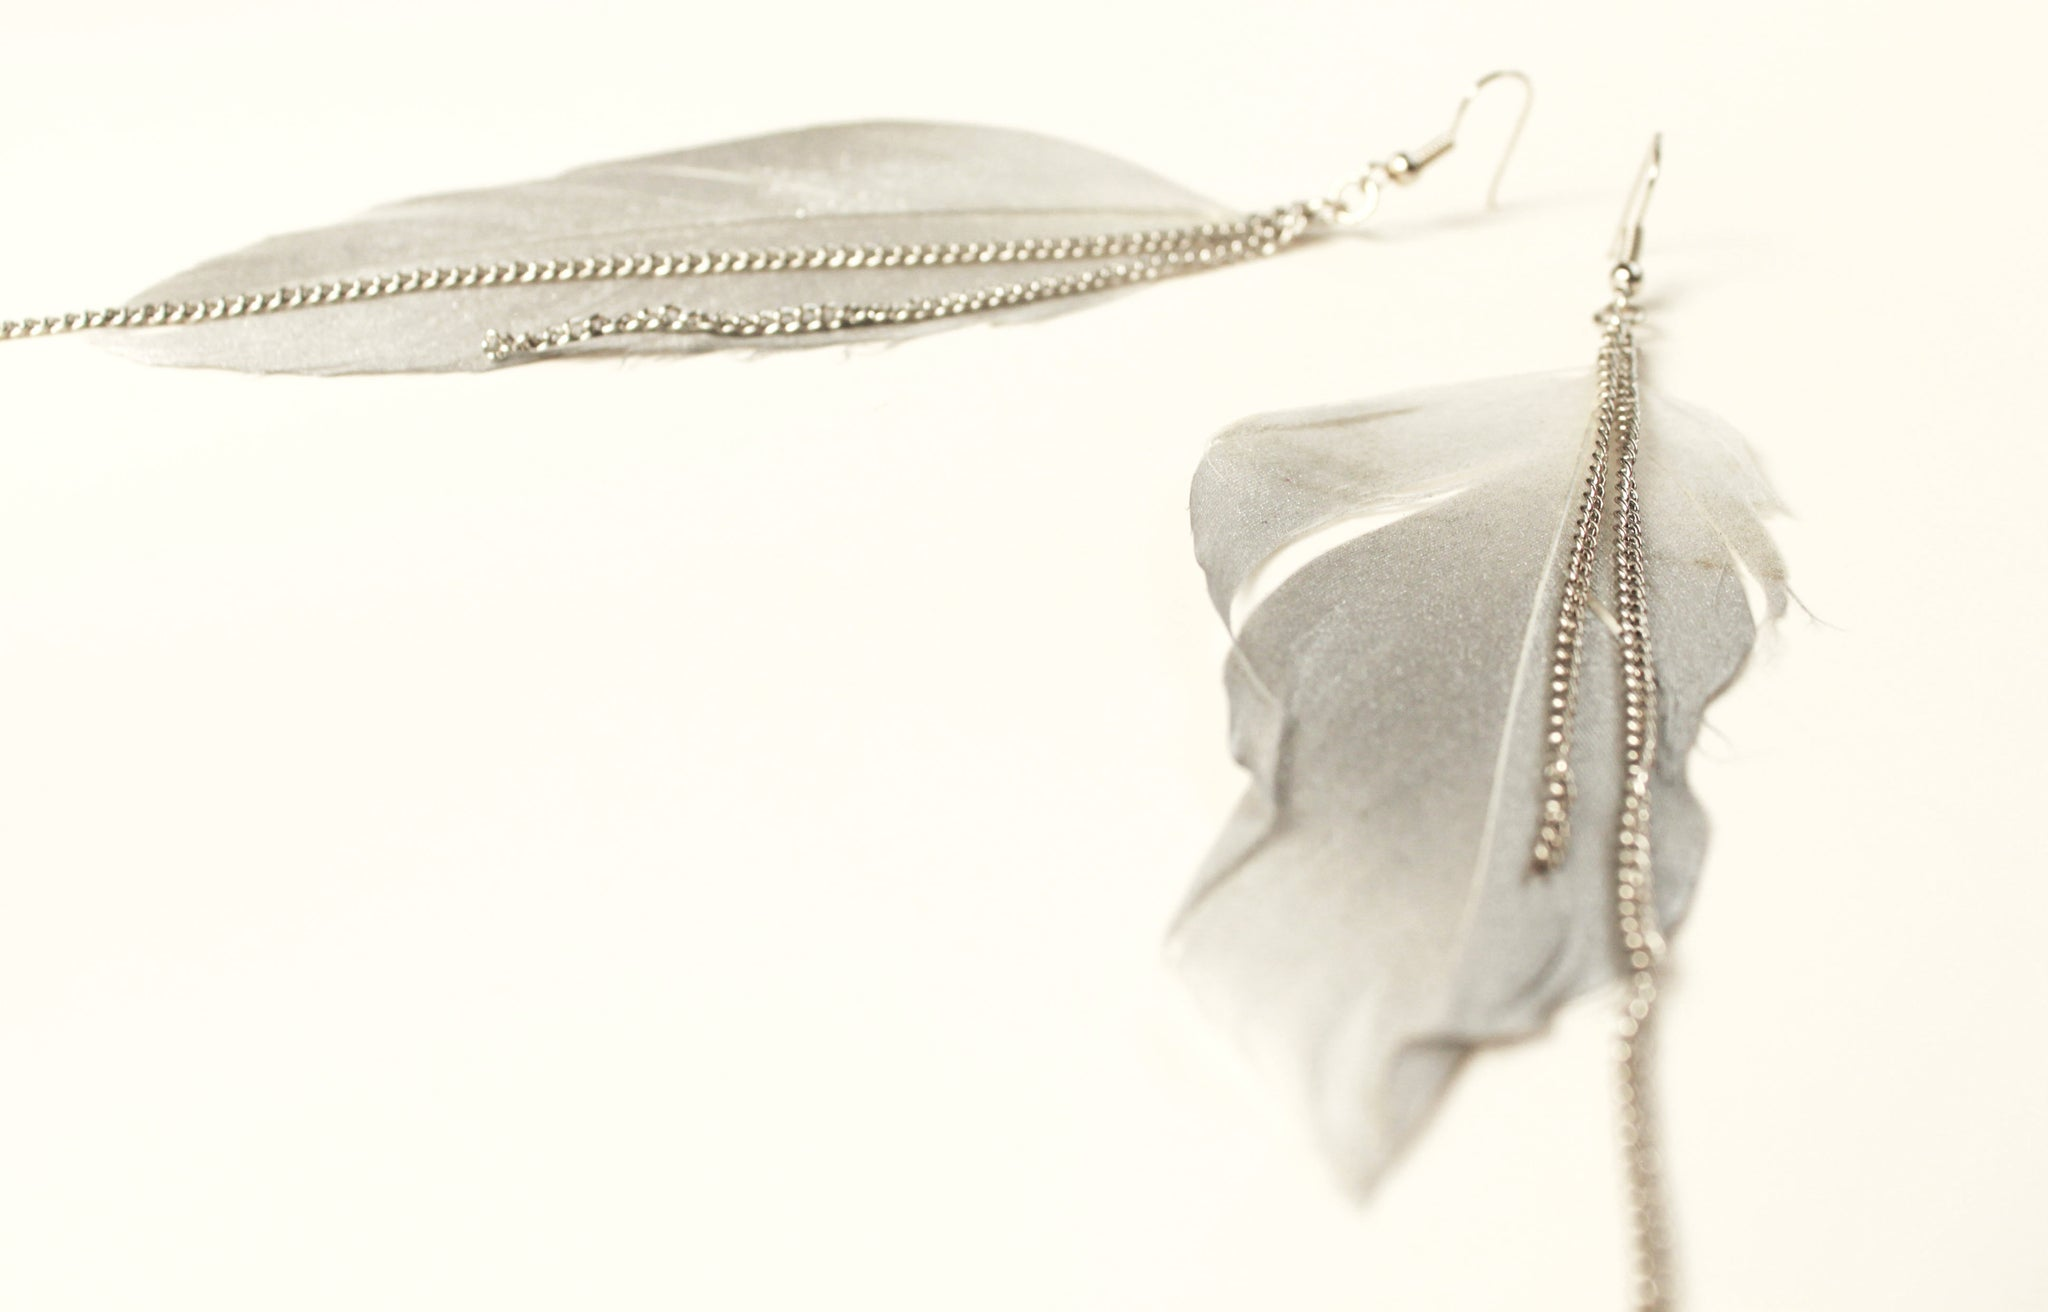 The Flock Feather & Chain Earrings